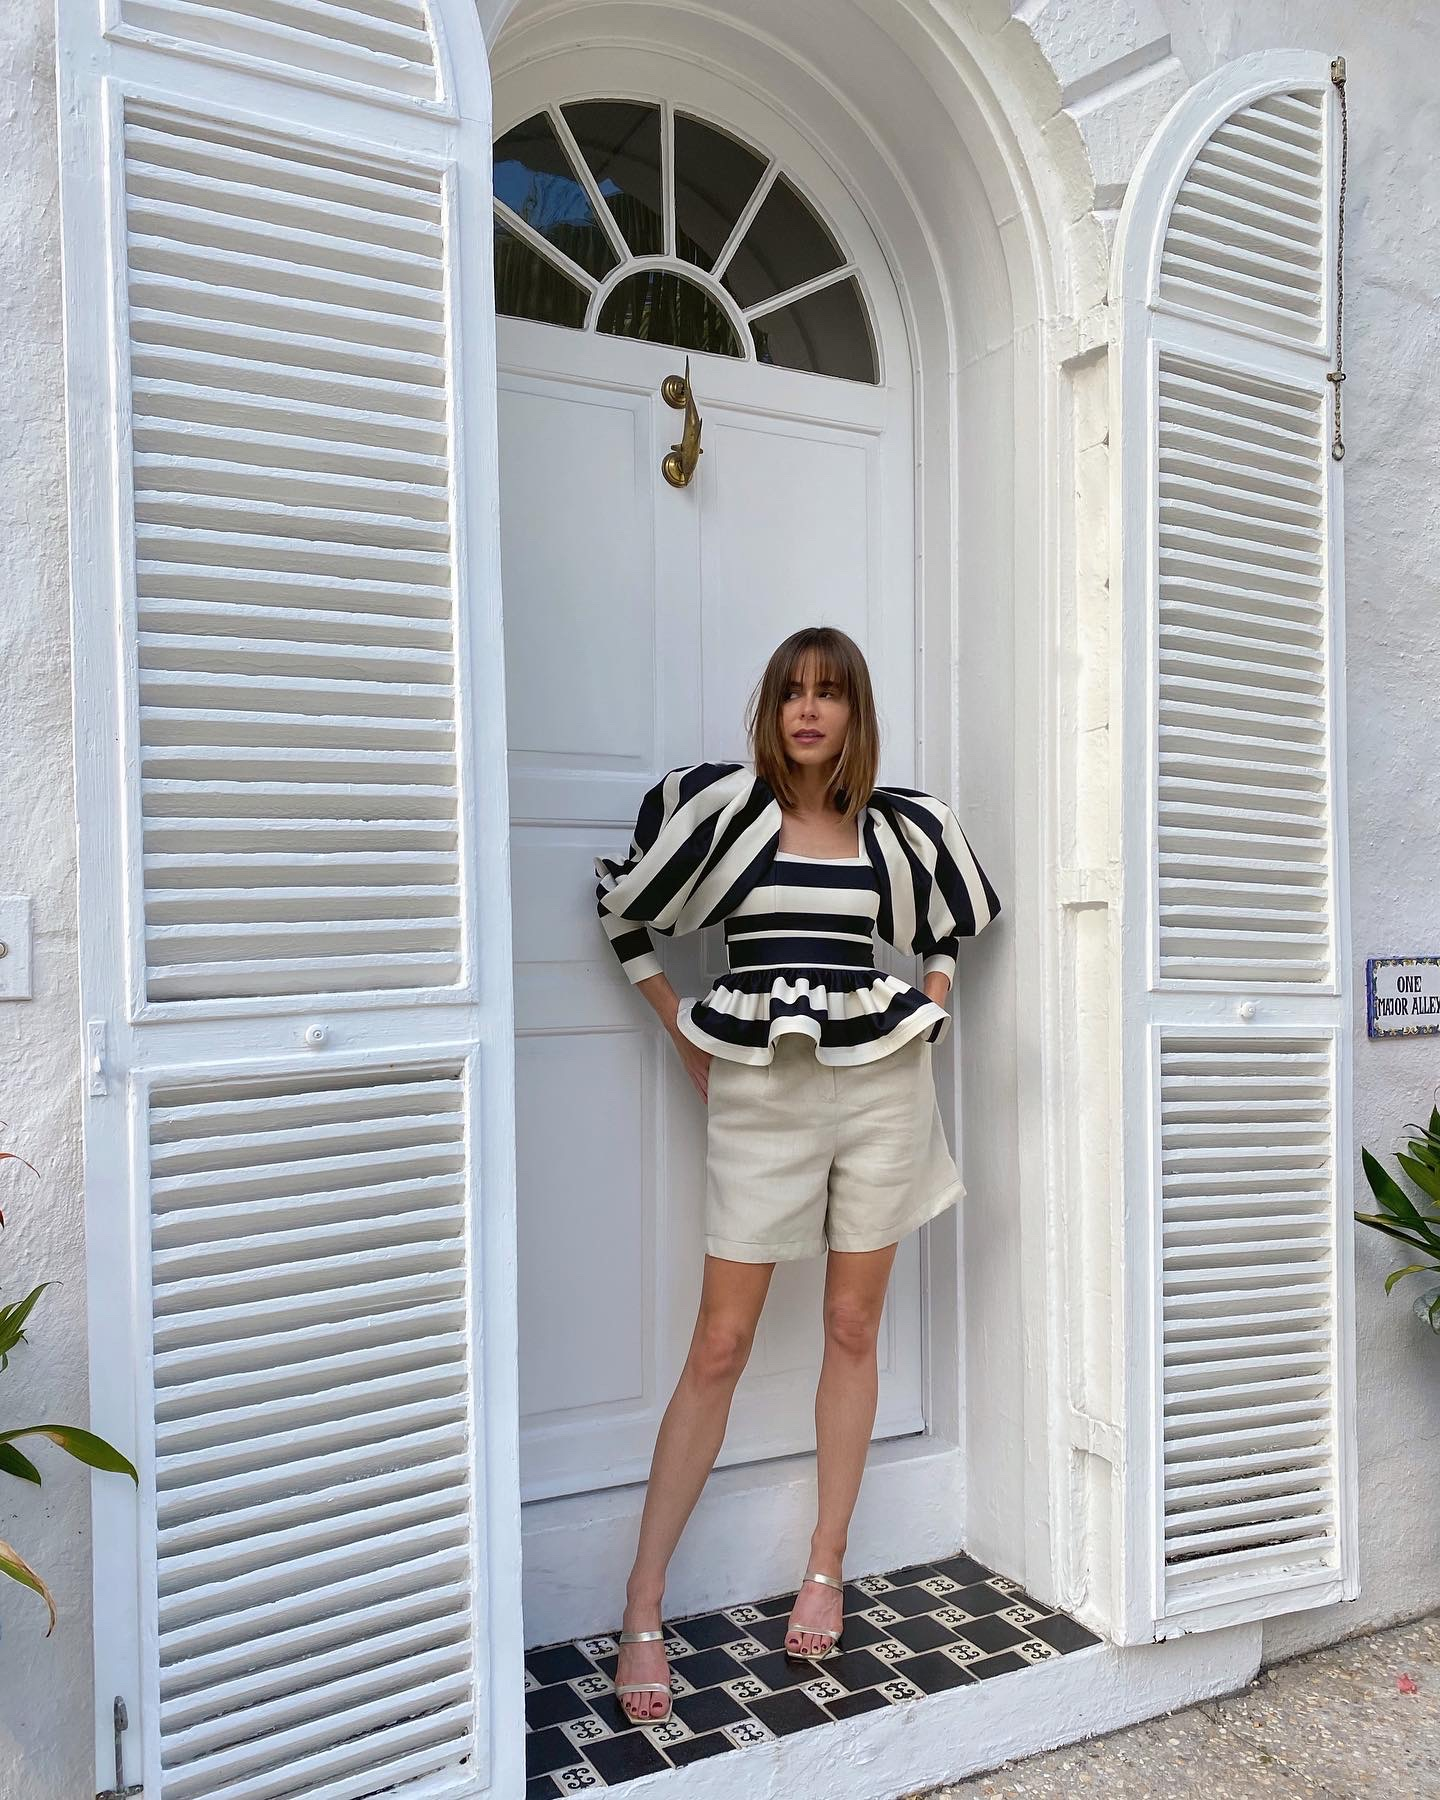 Stephanie Hill wears an #ootd featuring a blouse by Eugenia Fernandez on The Style Bungalow